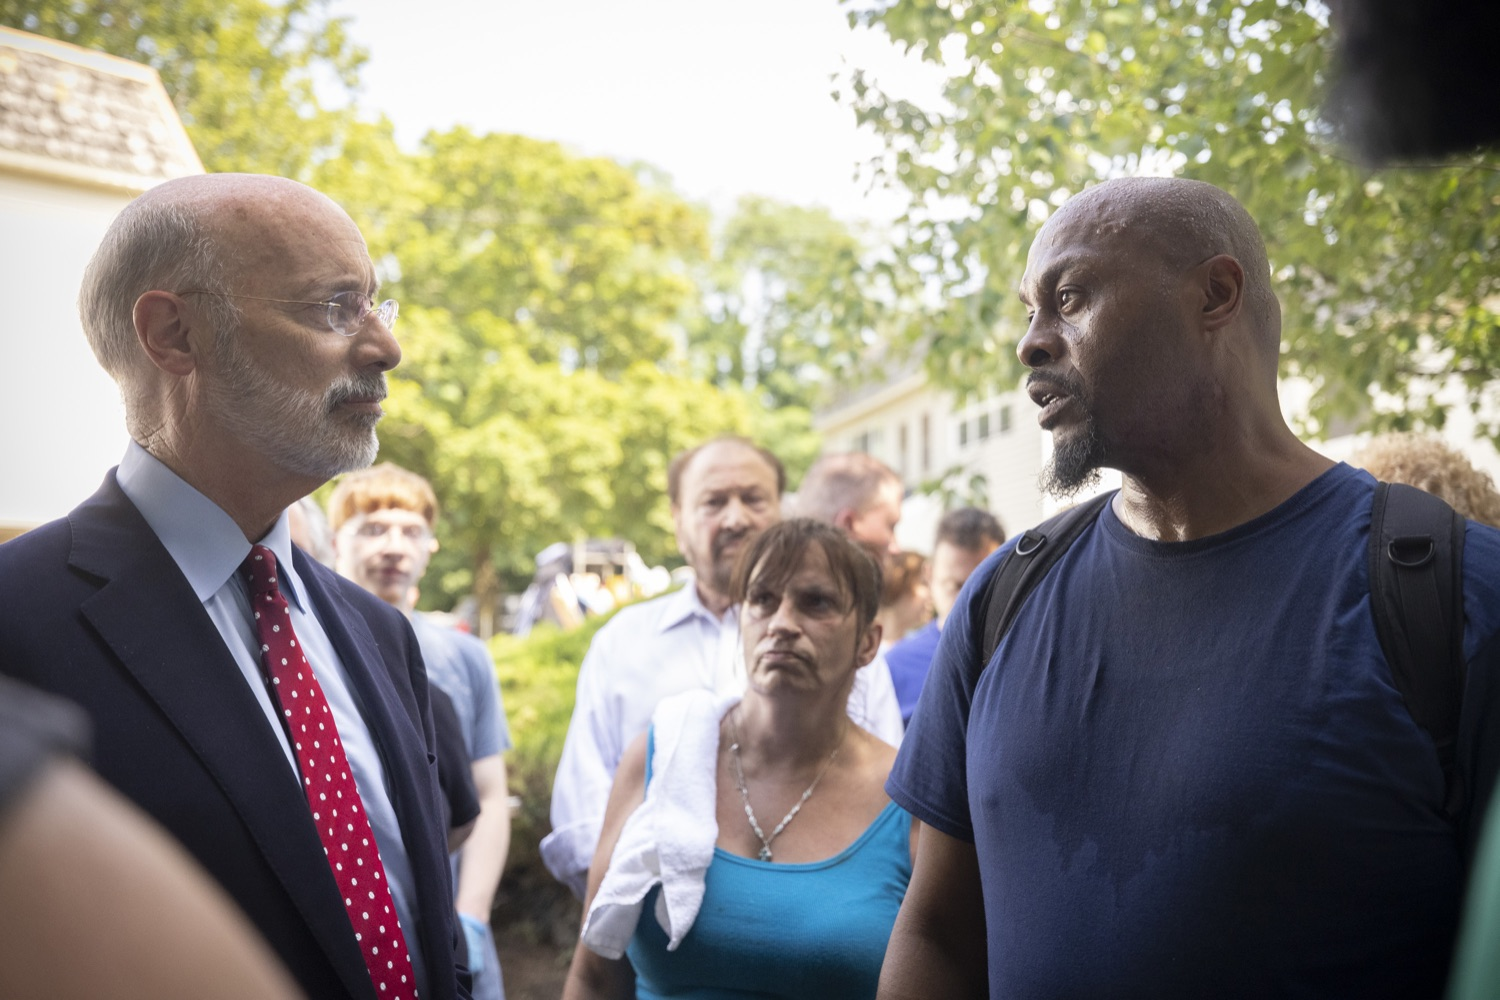 """<a href=""""https://filesource.wostreaming.net/commonwealthofpa/photo/18934_gov_stormdamage_dz_002.jpg"""" target=""""_blank"""">⇣Download Photo<br></a>Jermaine Hoskins a victim of the flooding speaking with Pennsylvania Governor Tom Wolf.  Governor Tom Wolf visited Bristol and Andalusia in Bucks County to tour communities affected by severe weather and flash flooding. The governor was joined by local officials and legislators to visit damaged homes and speak to residents. JULY 16, 2021 - ANDALUSIA, PA"""